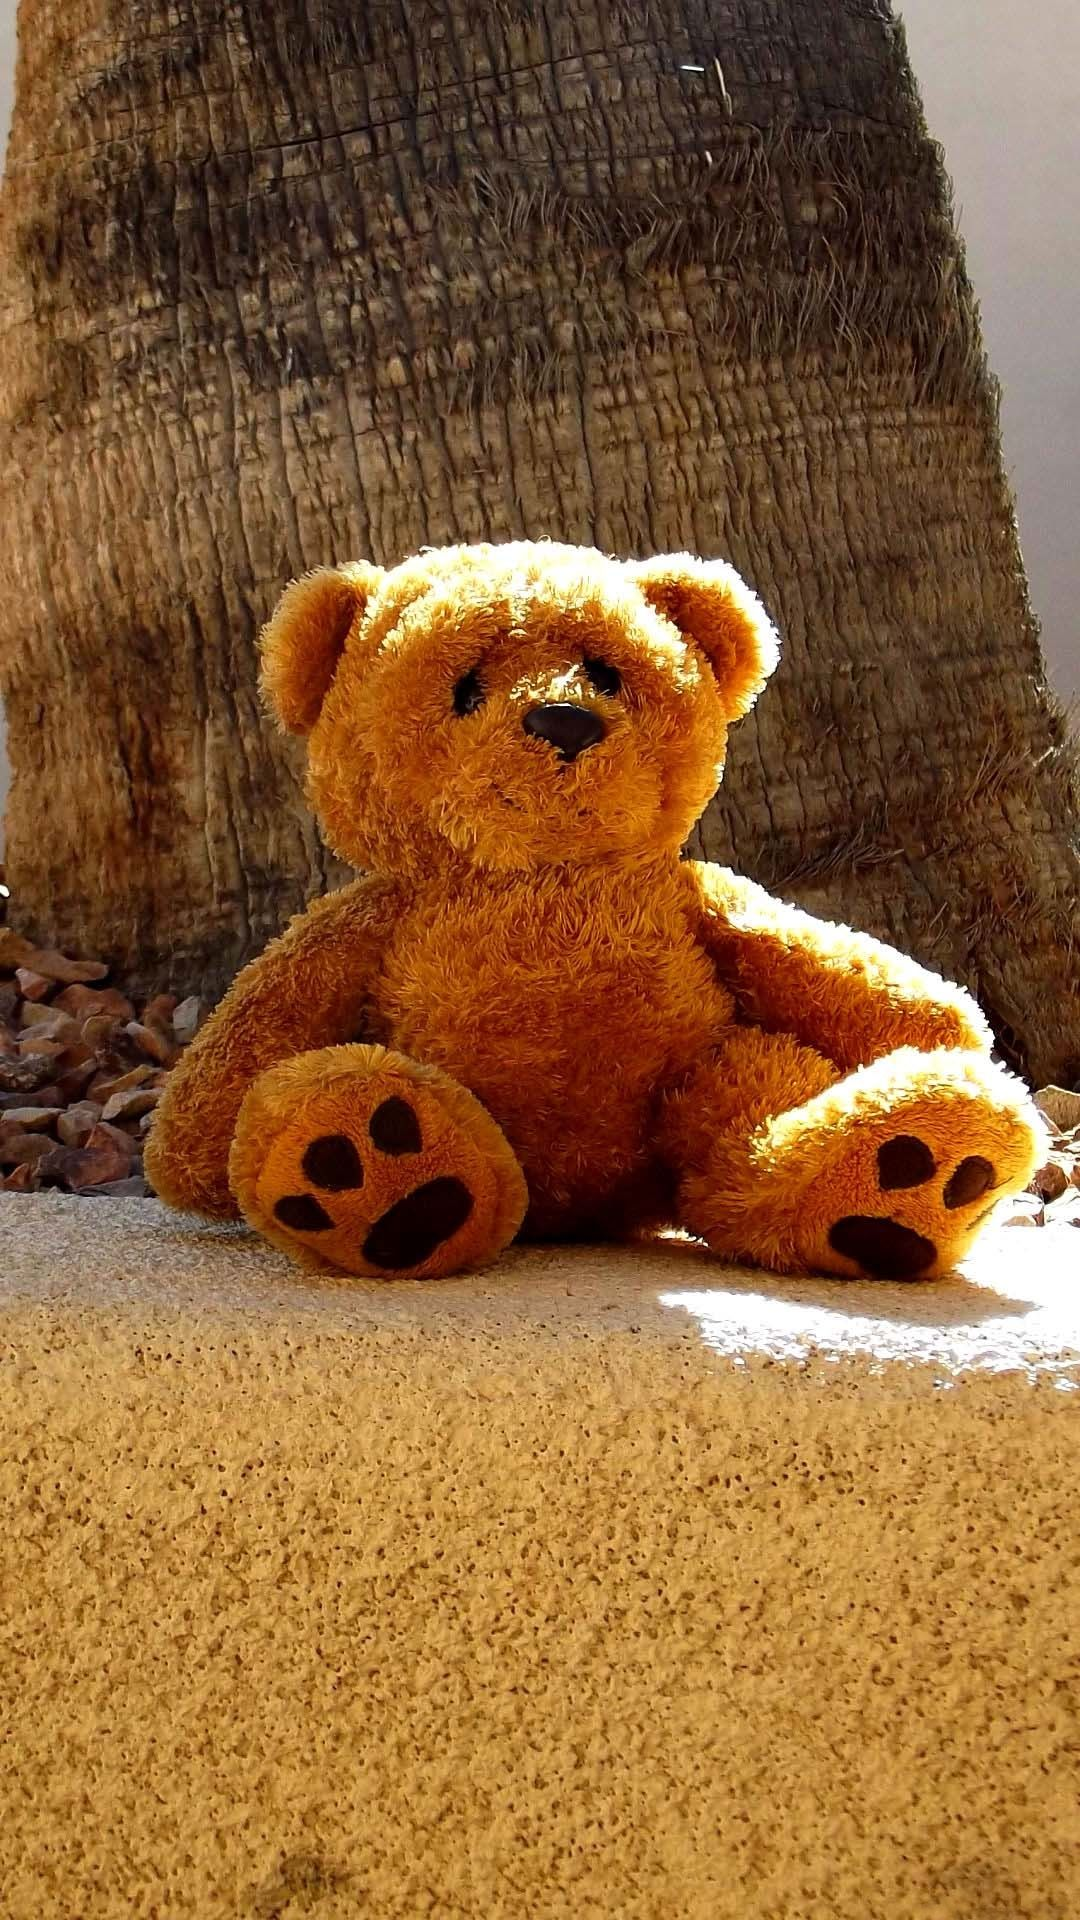 Cute Teddy Teddy Bear Wallpaper Cute Teddy Bears Teddy